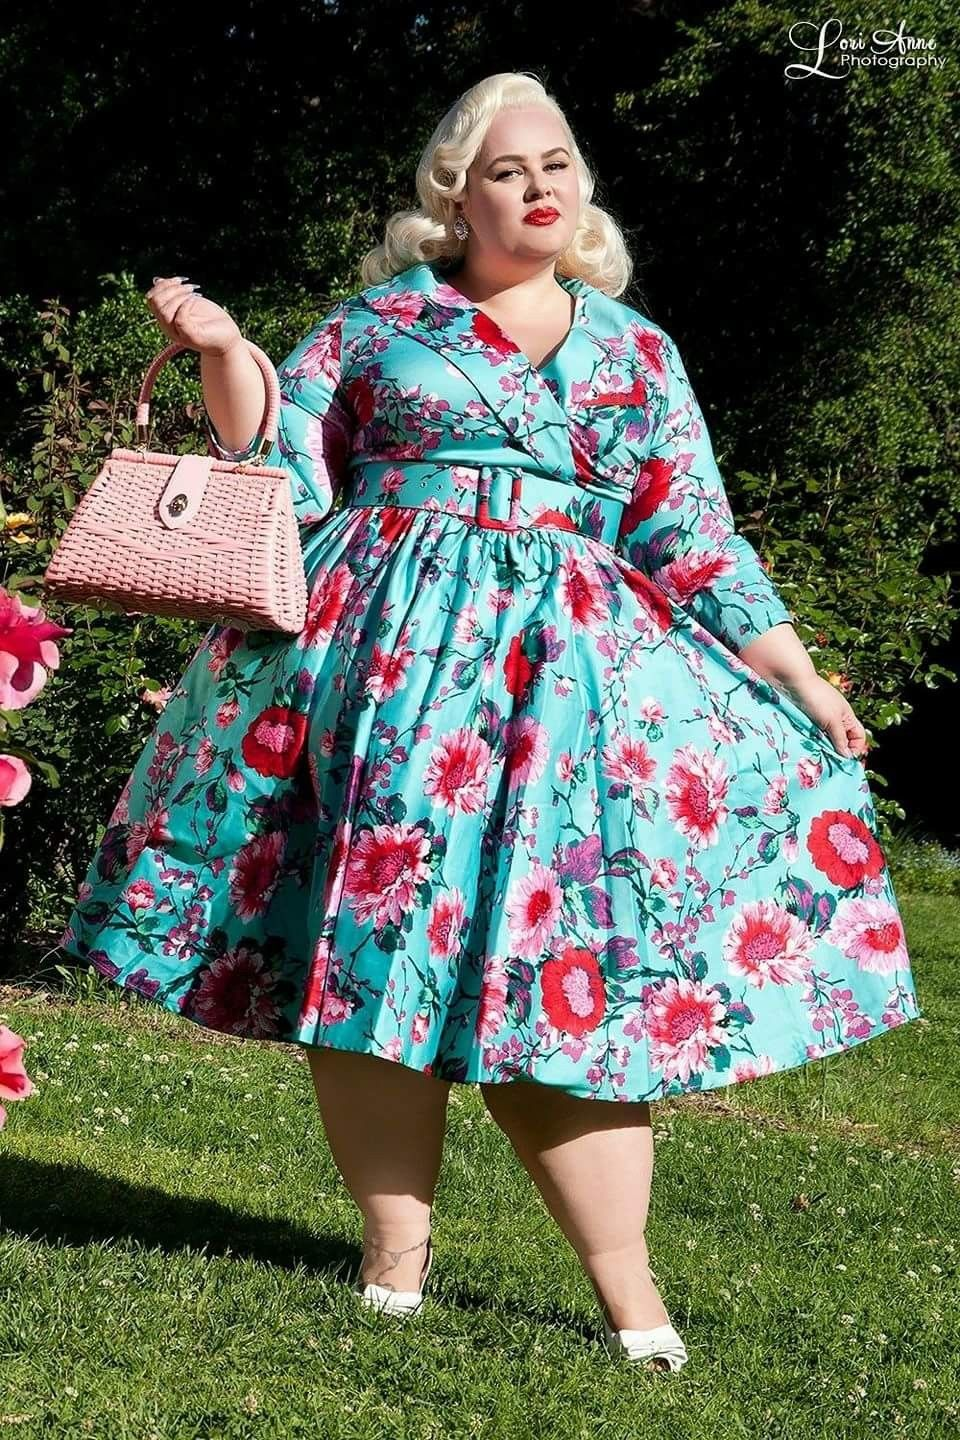 Pin by Ra Lee on Stylin\' | Pinterest | Curvy, Curves and Ssbbw